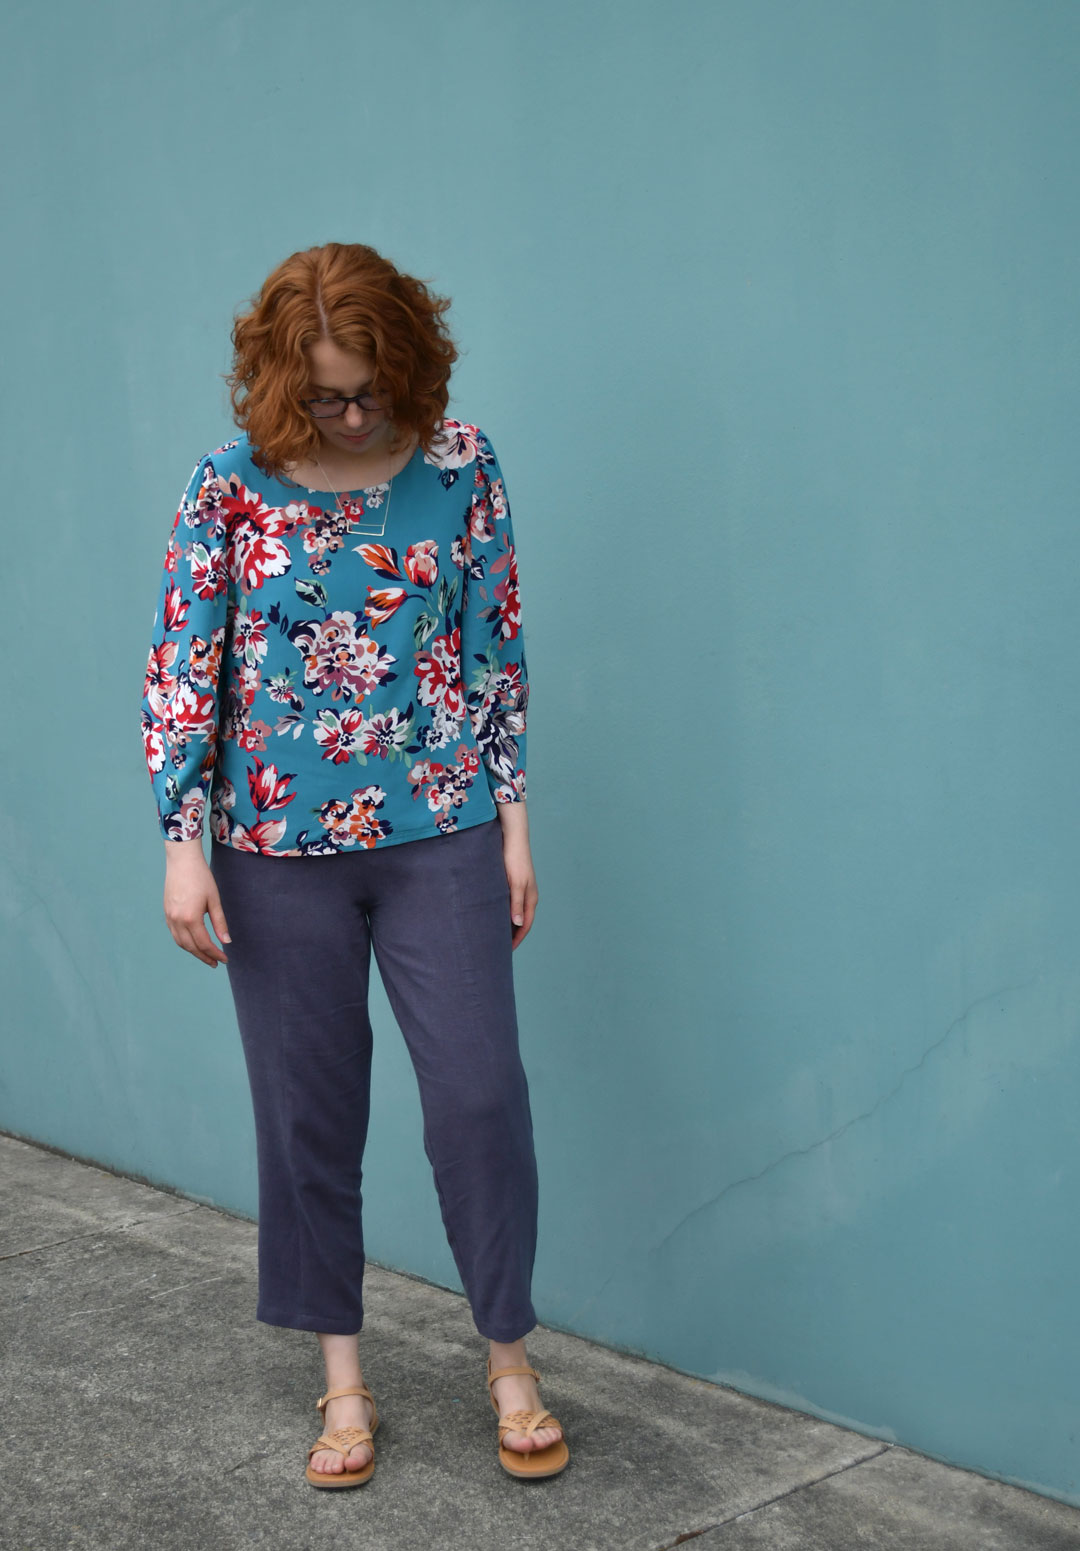 Cielo Top and Pietra Pants Summer Outfit | Style Maker Fabrics